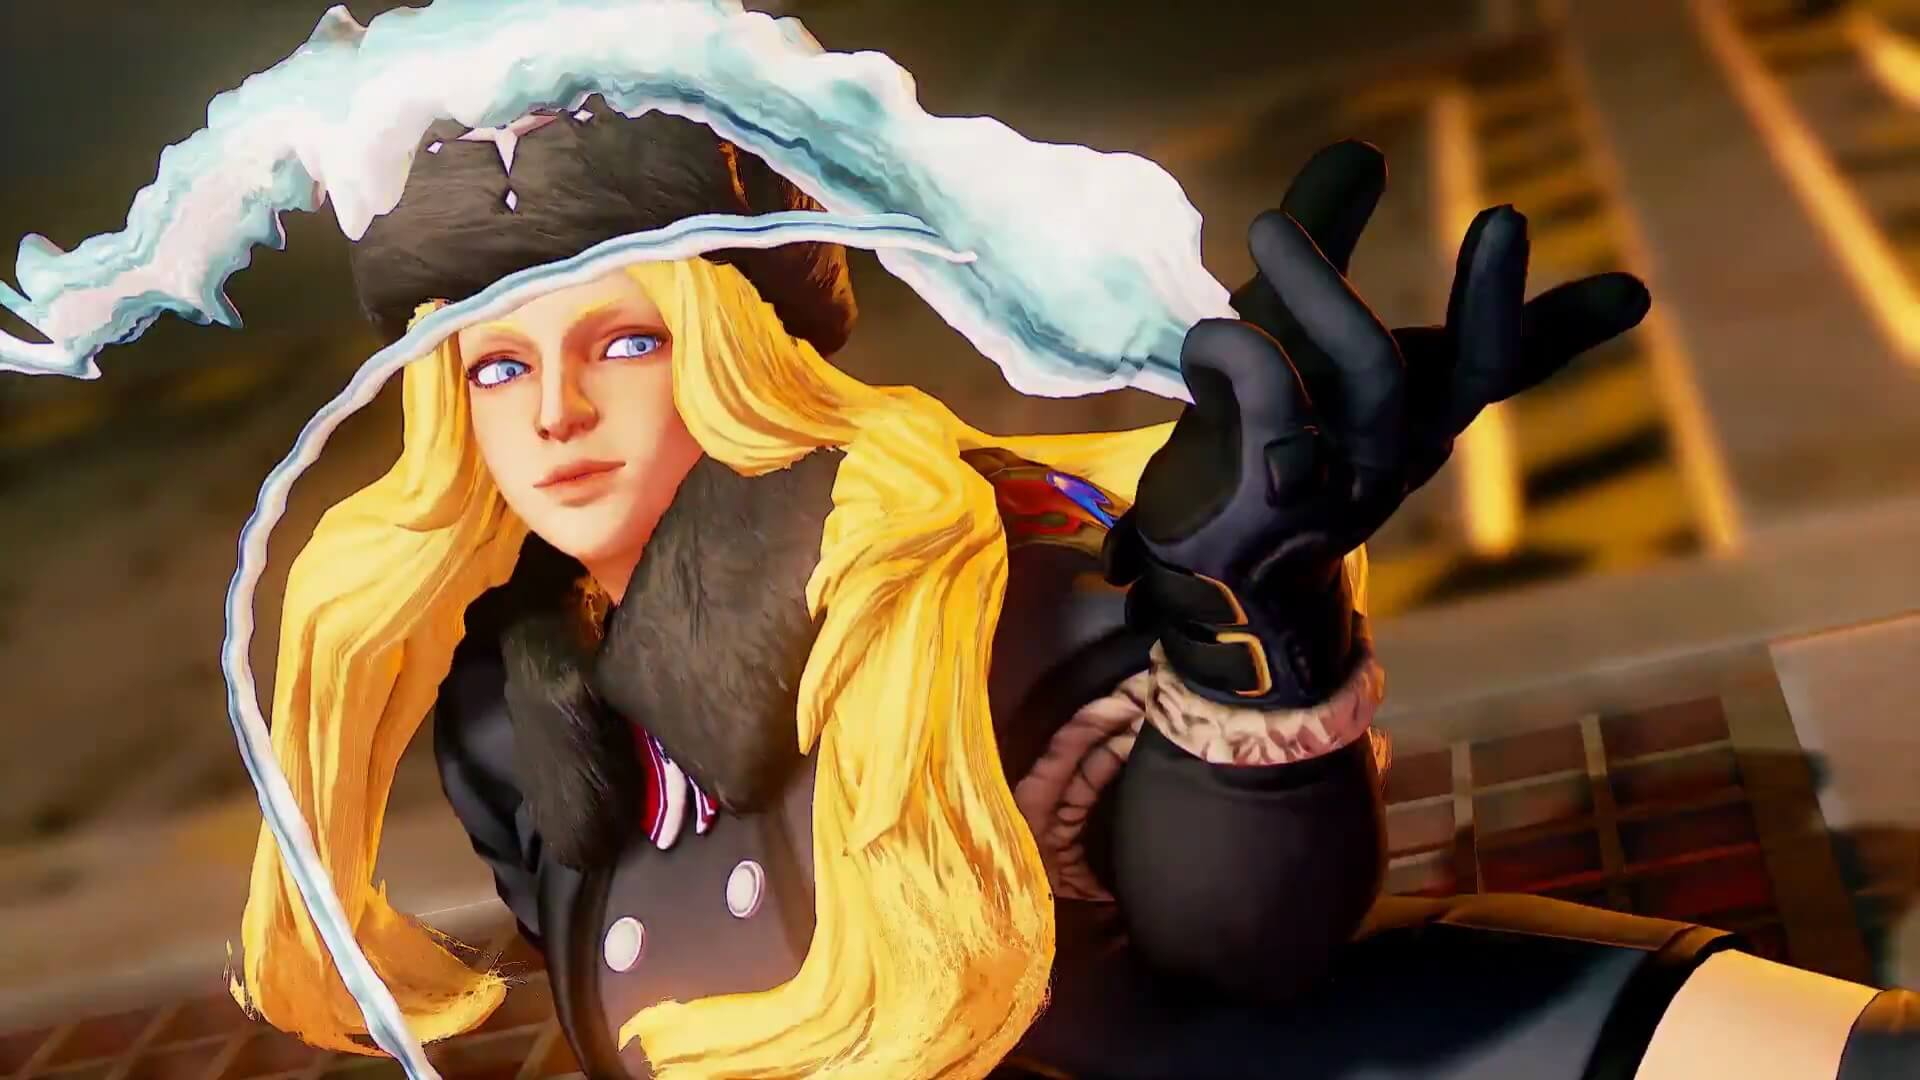 Street Fighter V - New Trailer Introduces Kolin's Skills and Strategy